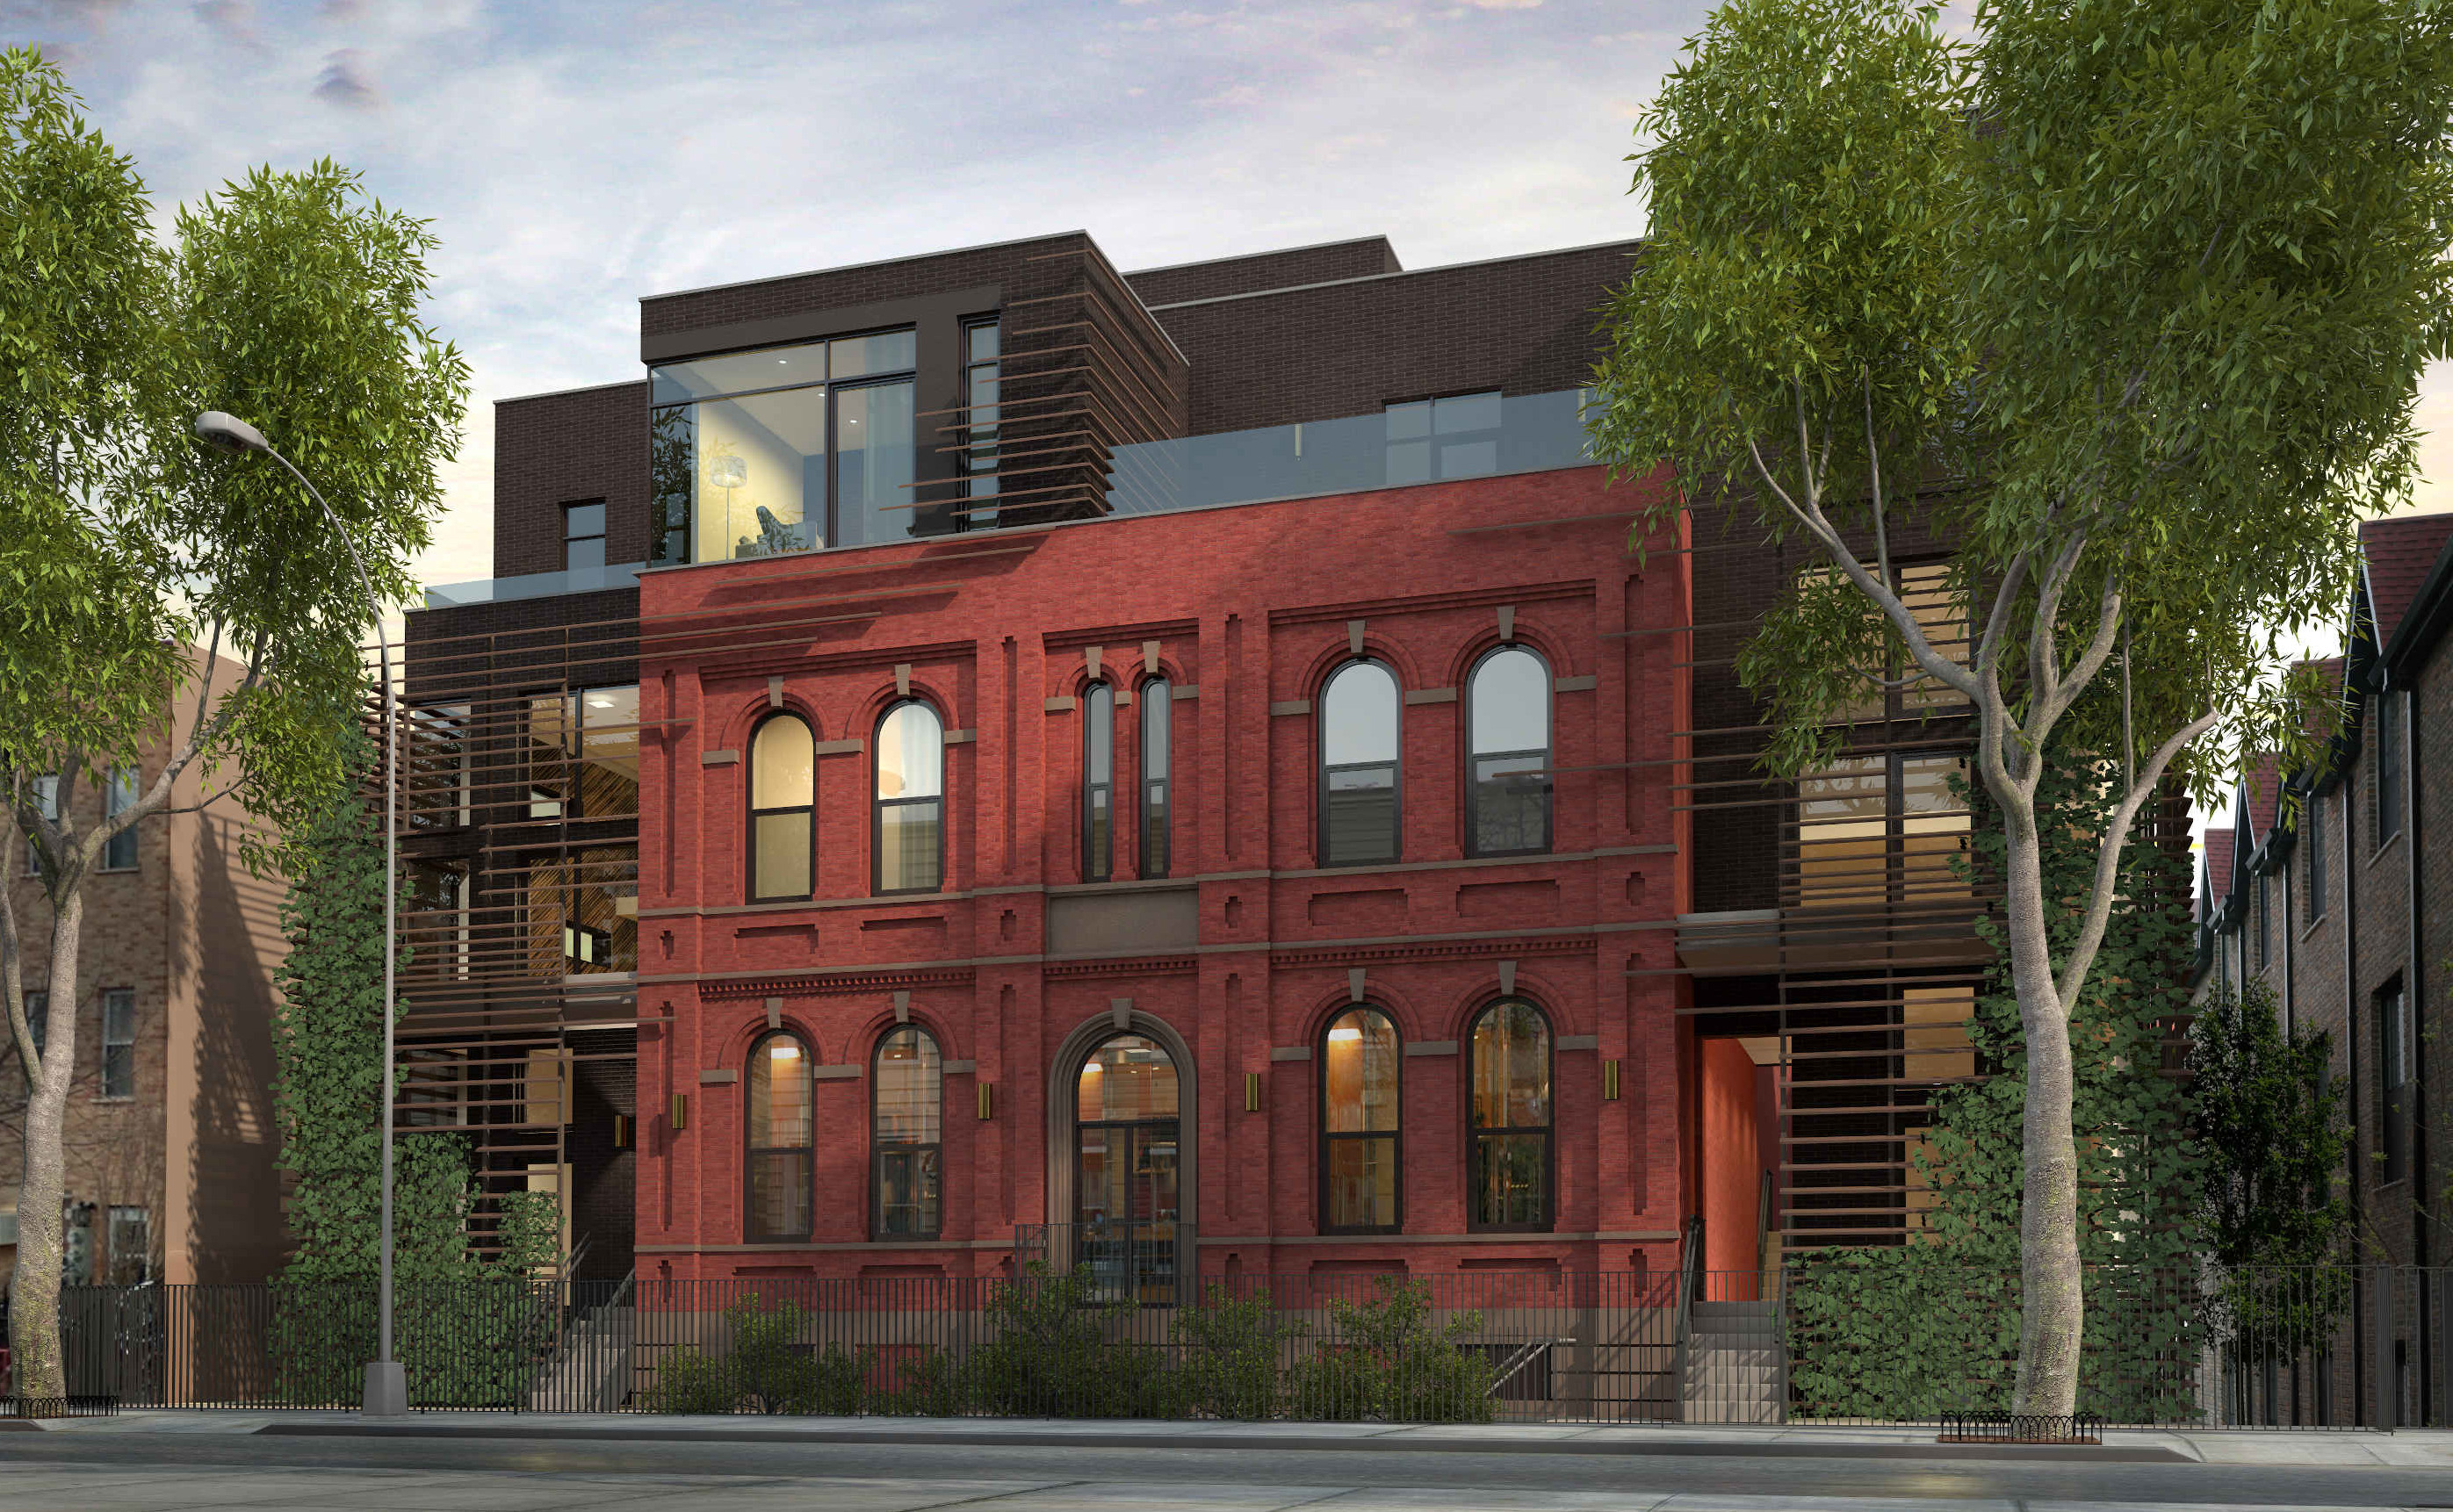 Greenpoint s 533 Leonard Condos Hit the Market Asking